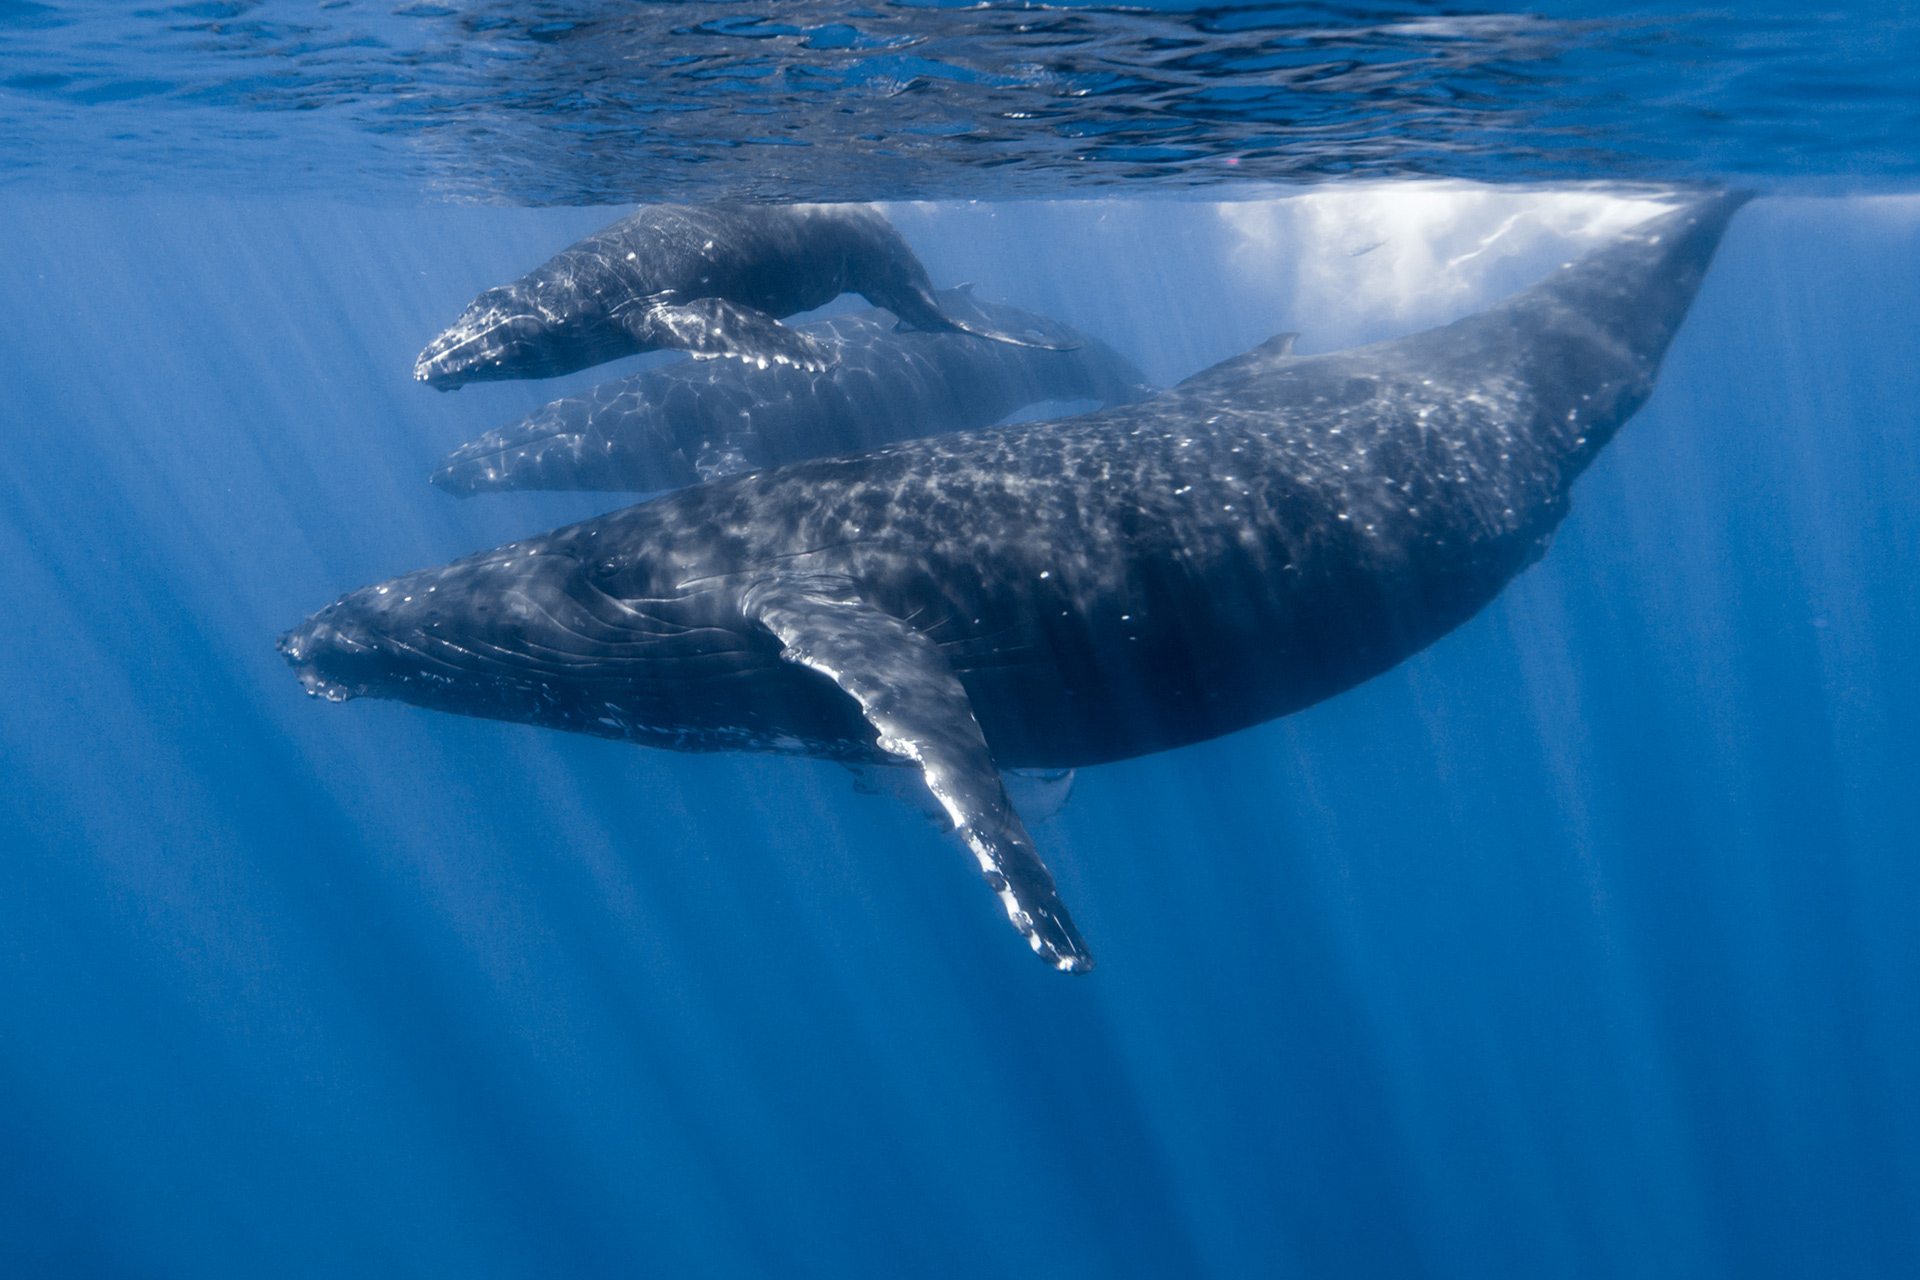 Maui Whale Watching Guide | Humpback Whales in Hawaii